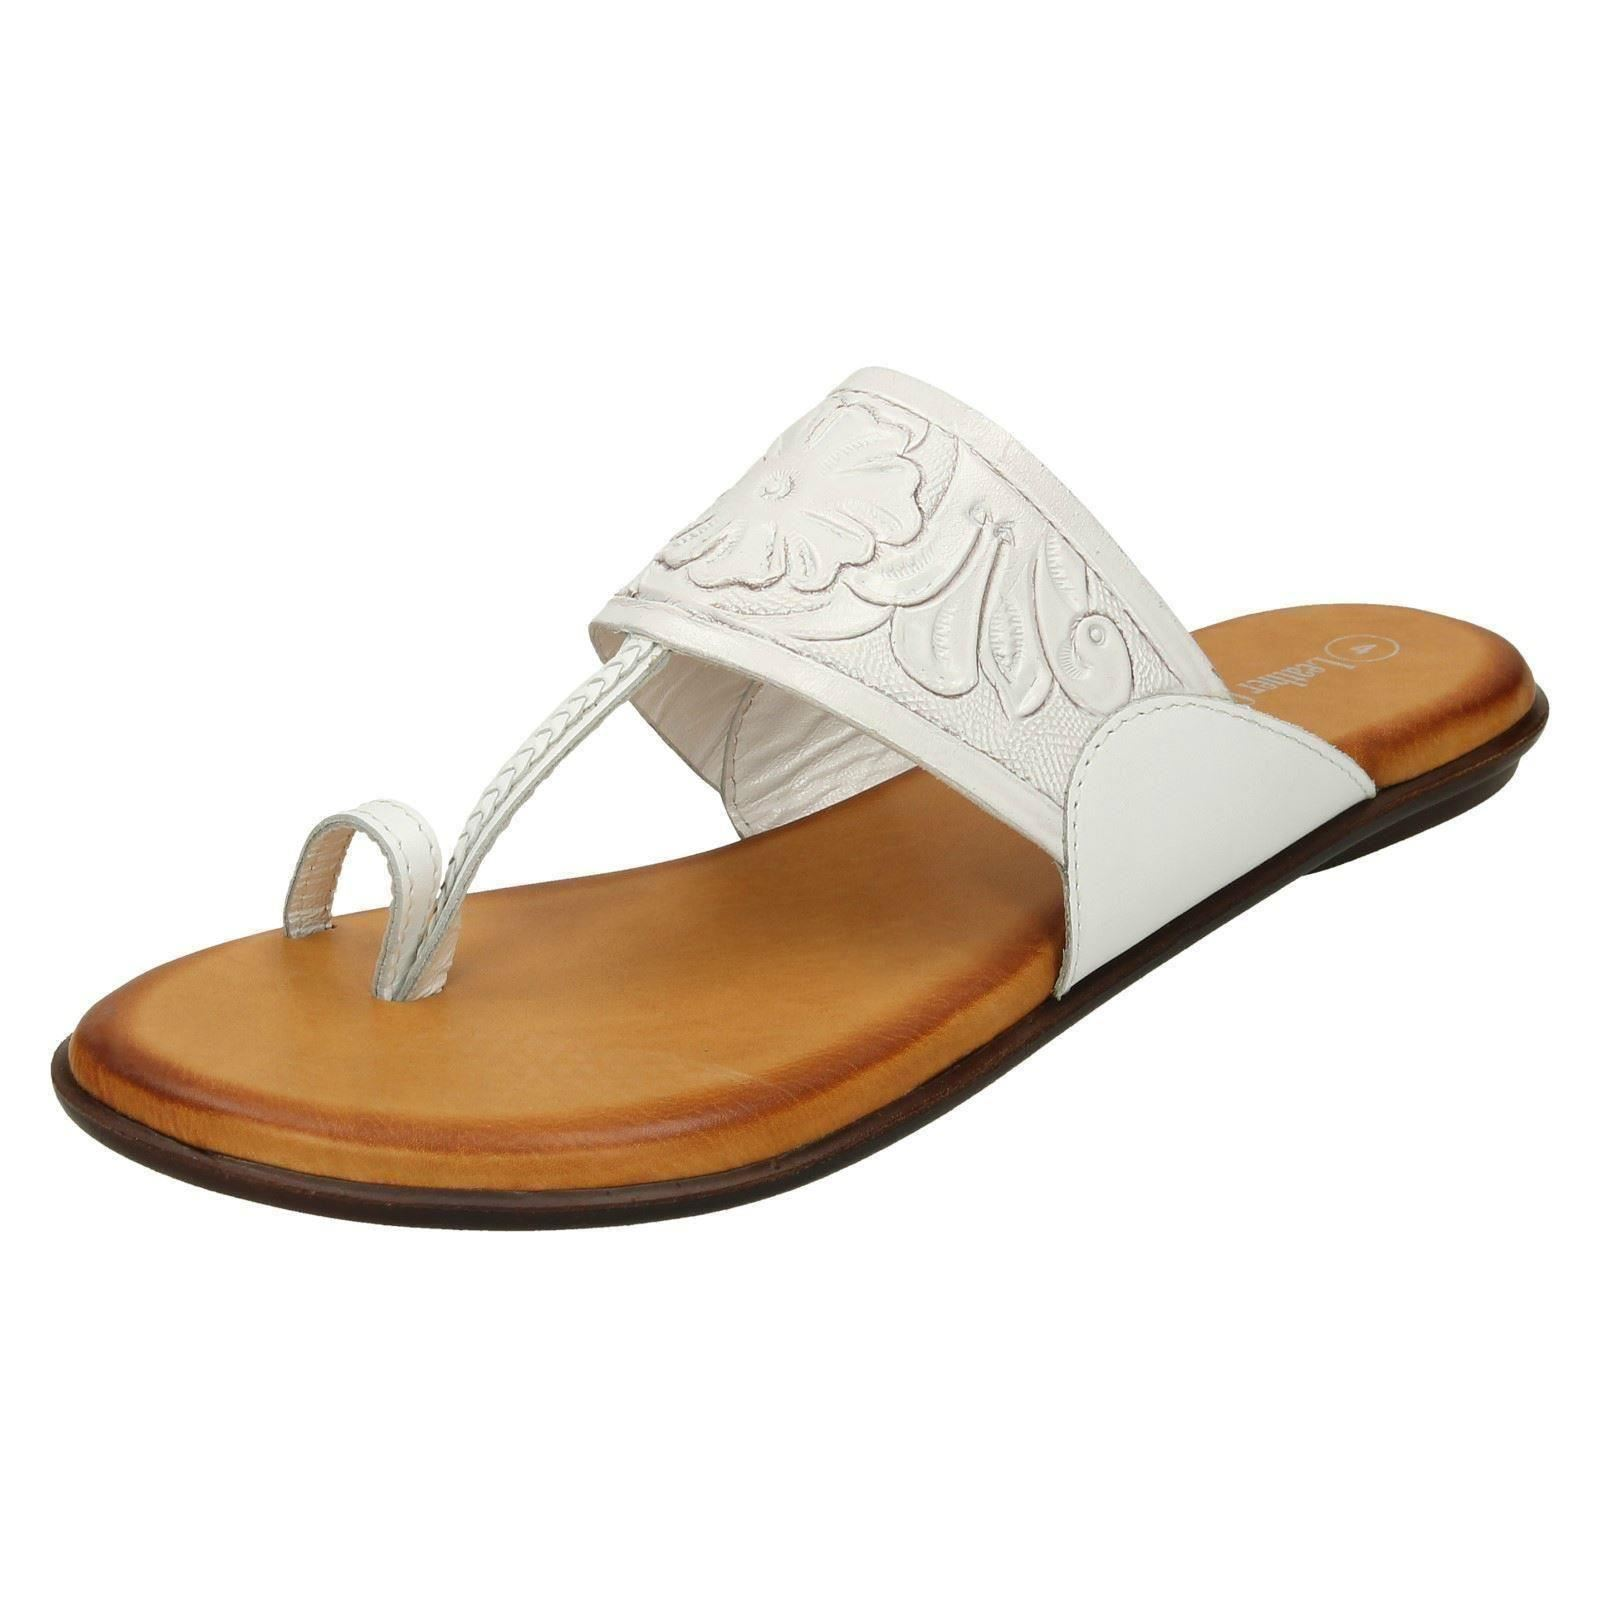 befb7c70cebe Ladies Leather Collection Flat Toe Loop Sandals F00041 White UK 3 ...